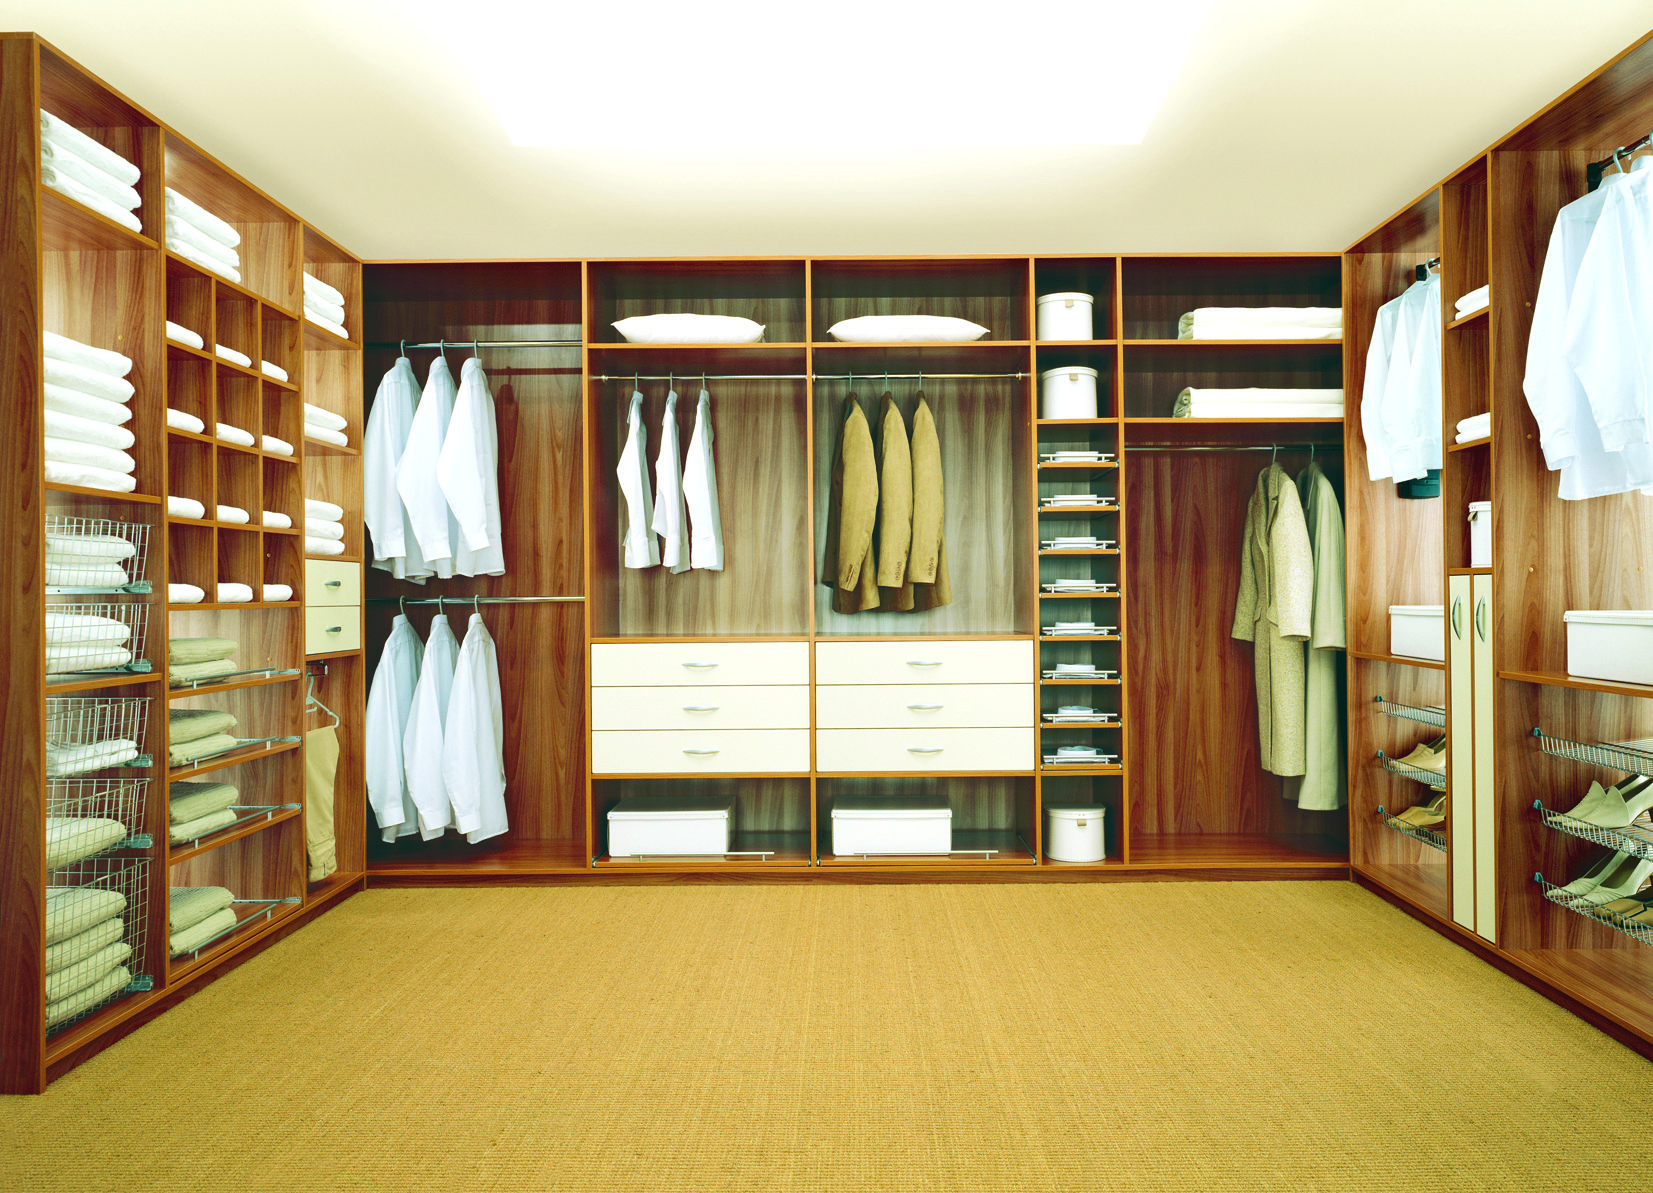 Master Closet Design Ideas l shape closet design ideas wwwlab333com 1000 Images About Walk In Closet Ideas On Pinterest Walk In Closet Closet And Master Closet